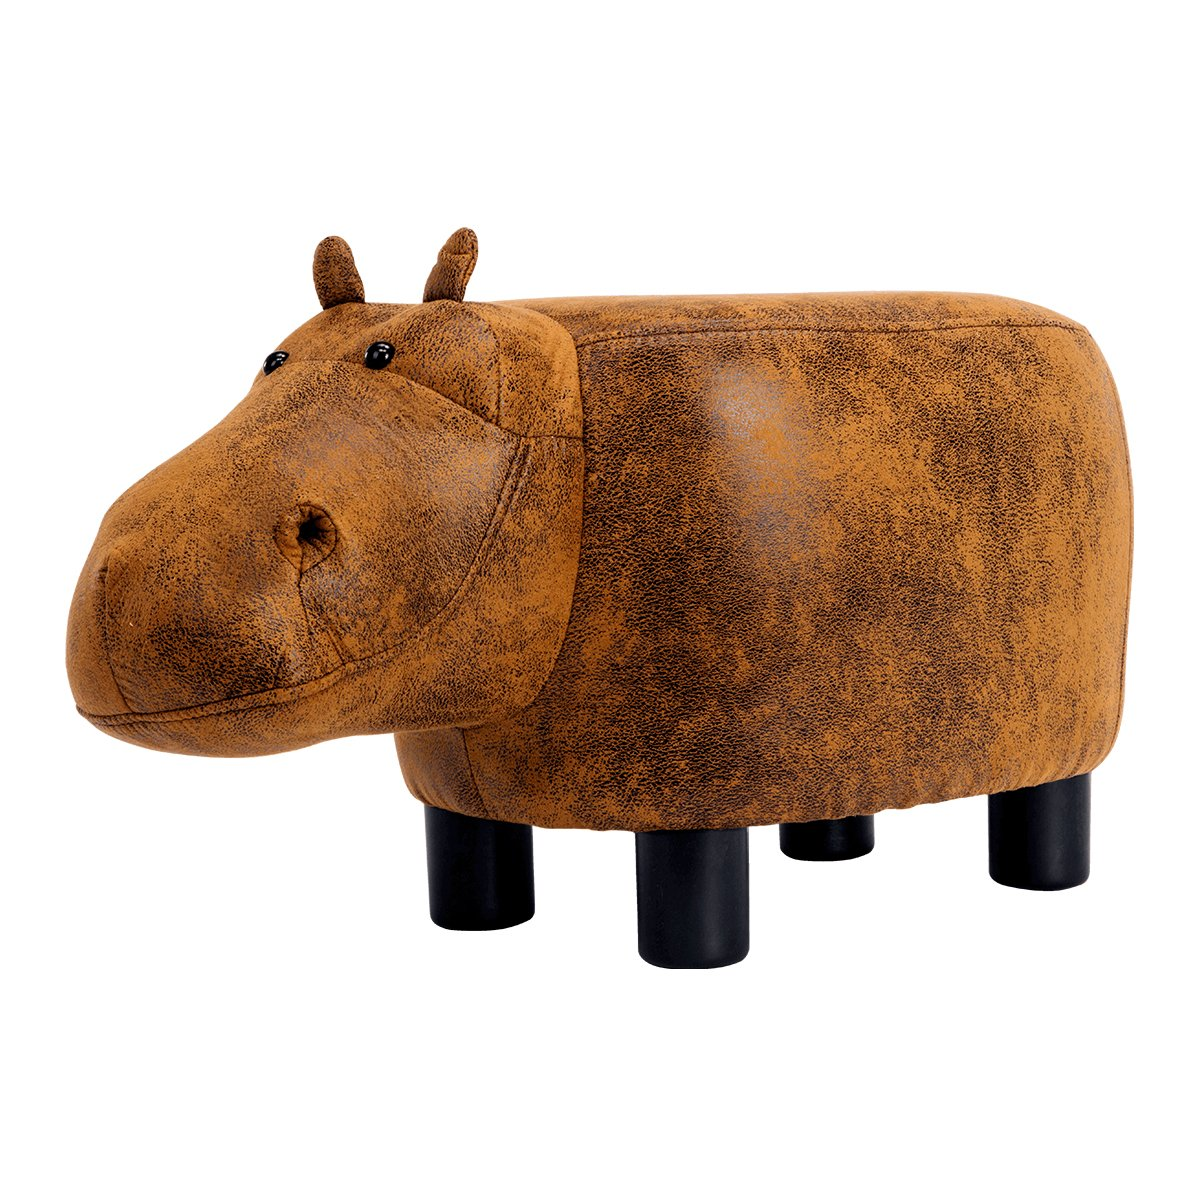 Guteen Upholstered Ride-on Toy Seat Ottoman Footrest Stool with Vivid Adorable Animal-Like Features(Brown Hippo) GU006-BROWN